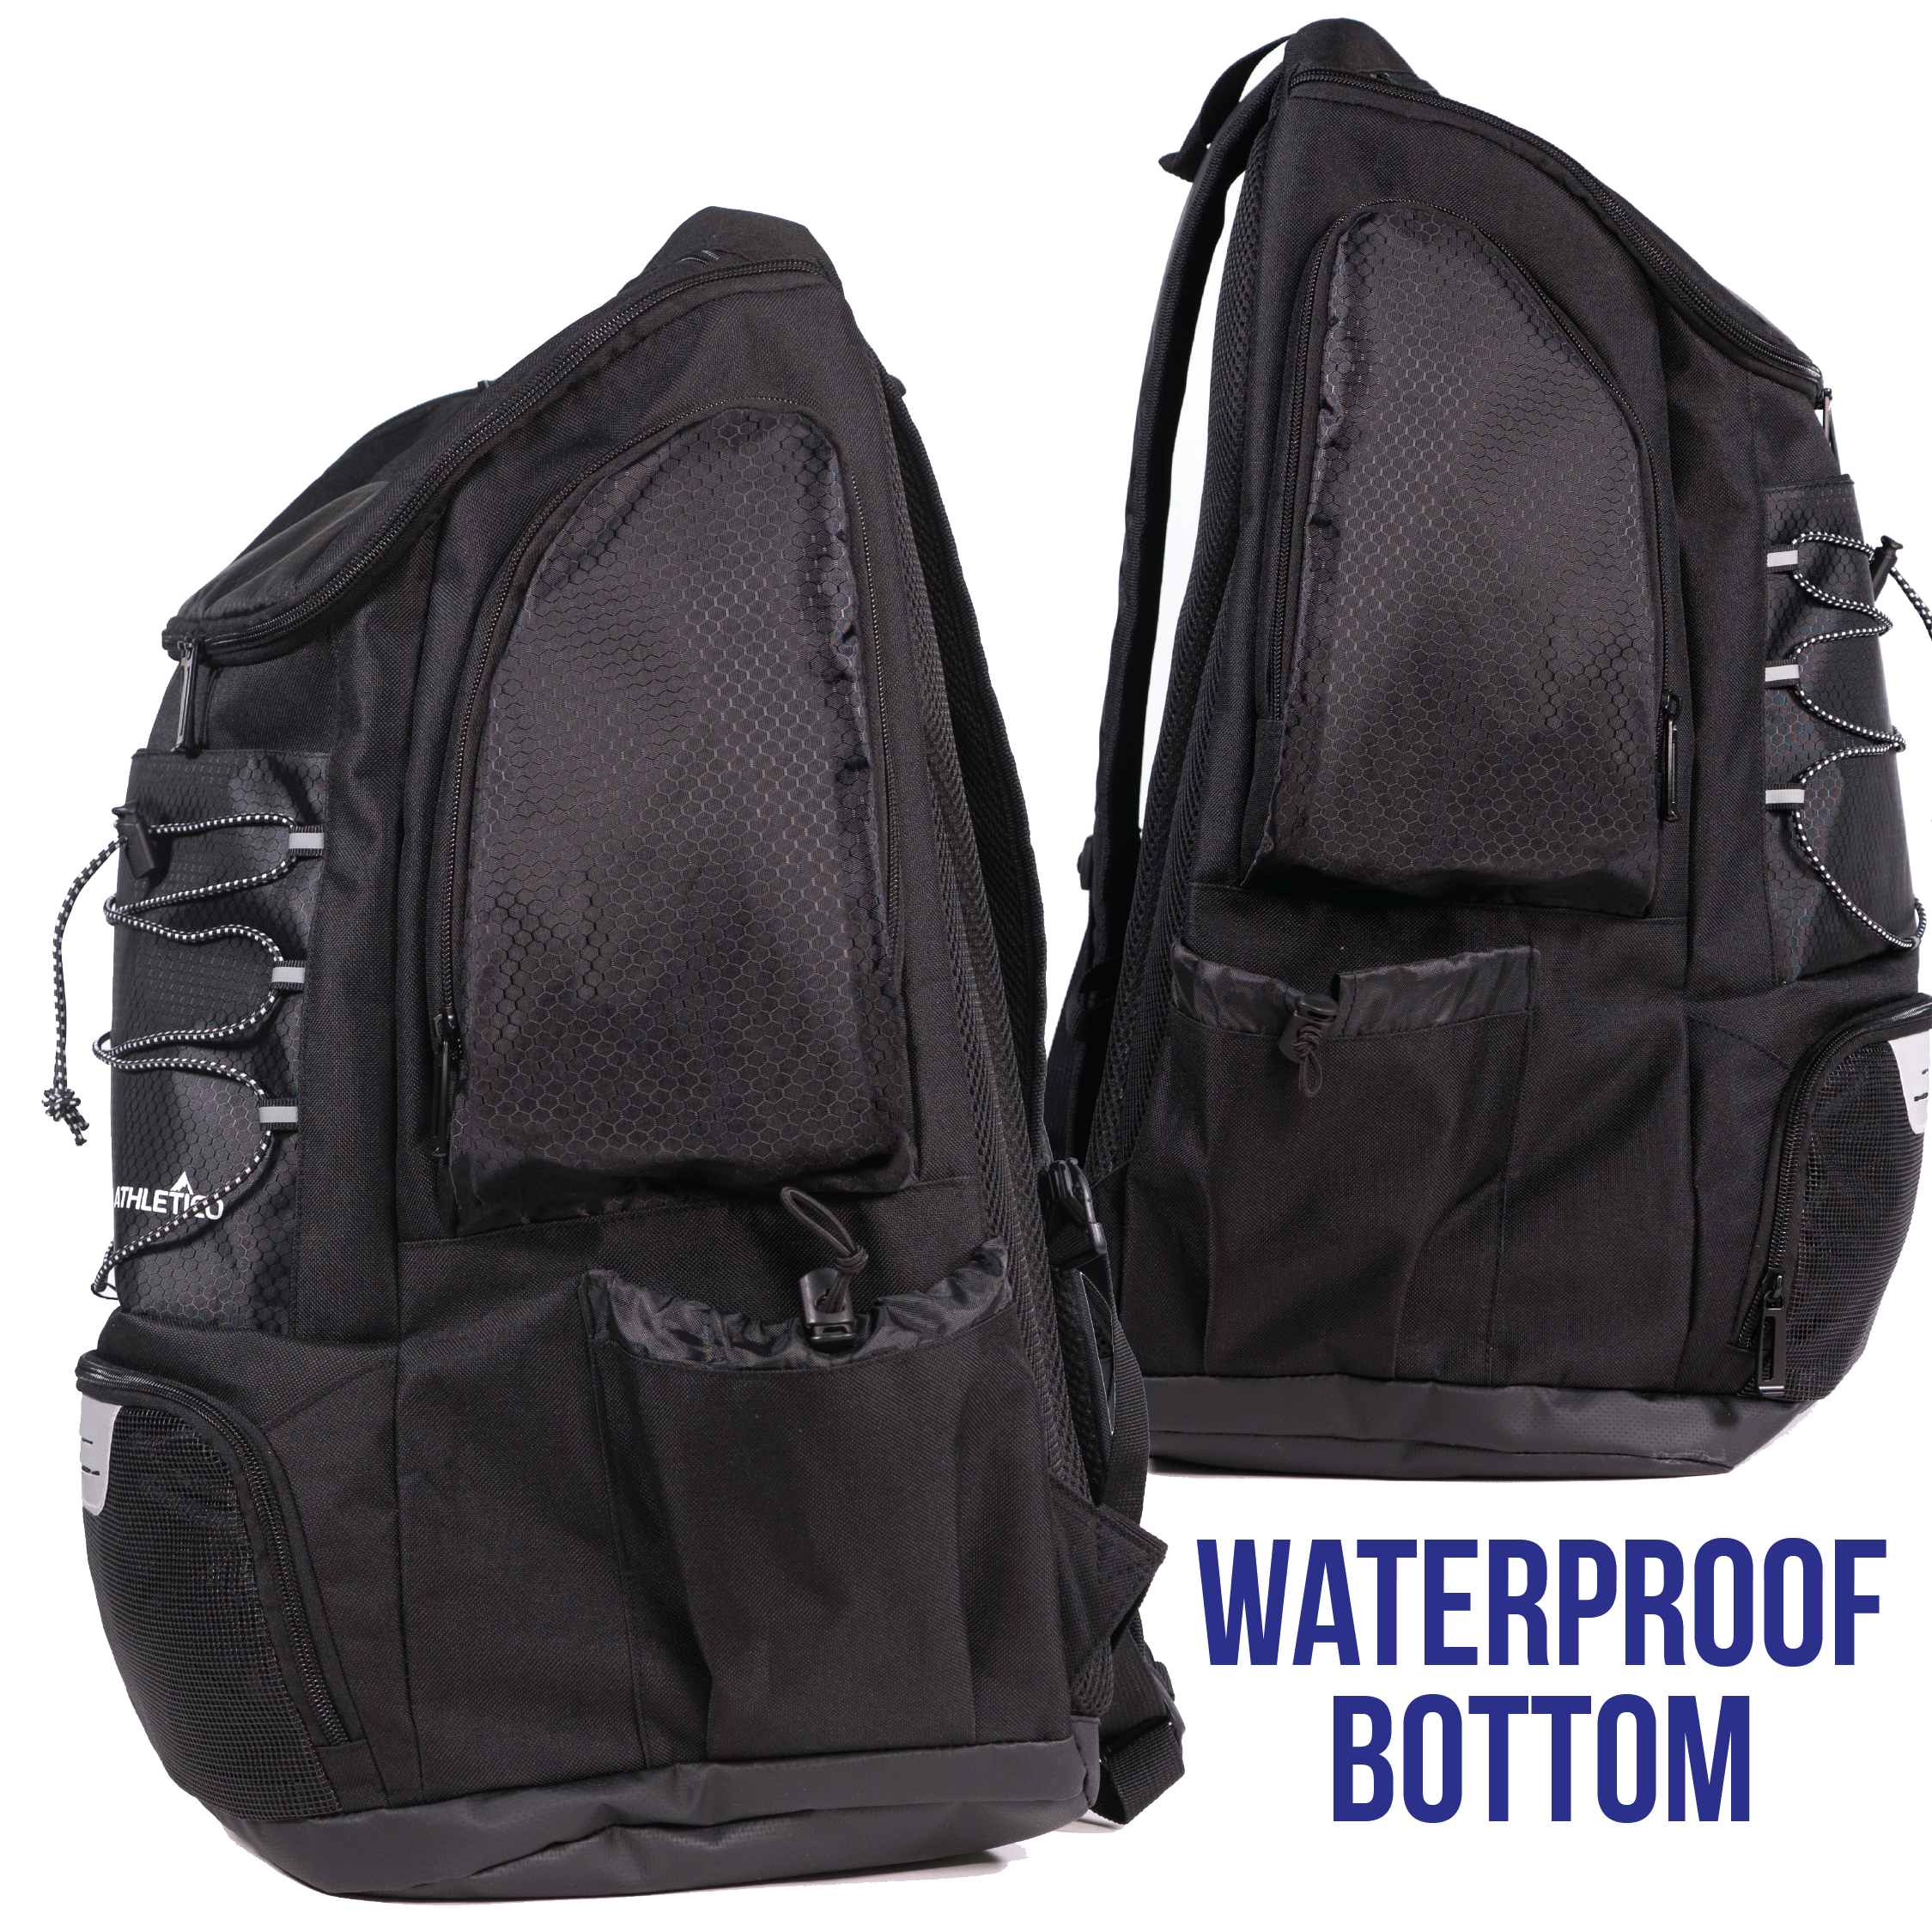 Athletico Swim Backpack ListingArtboard 4@0.75x.png